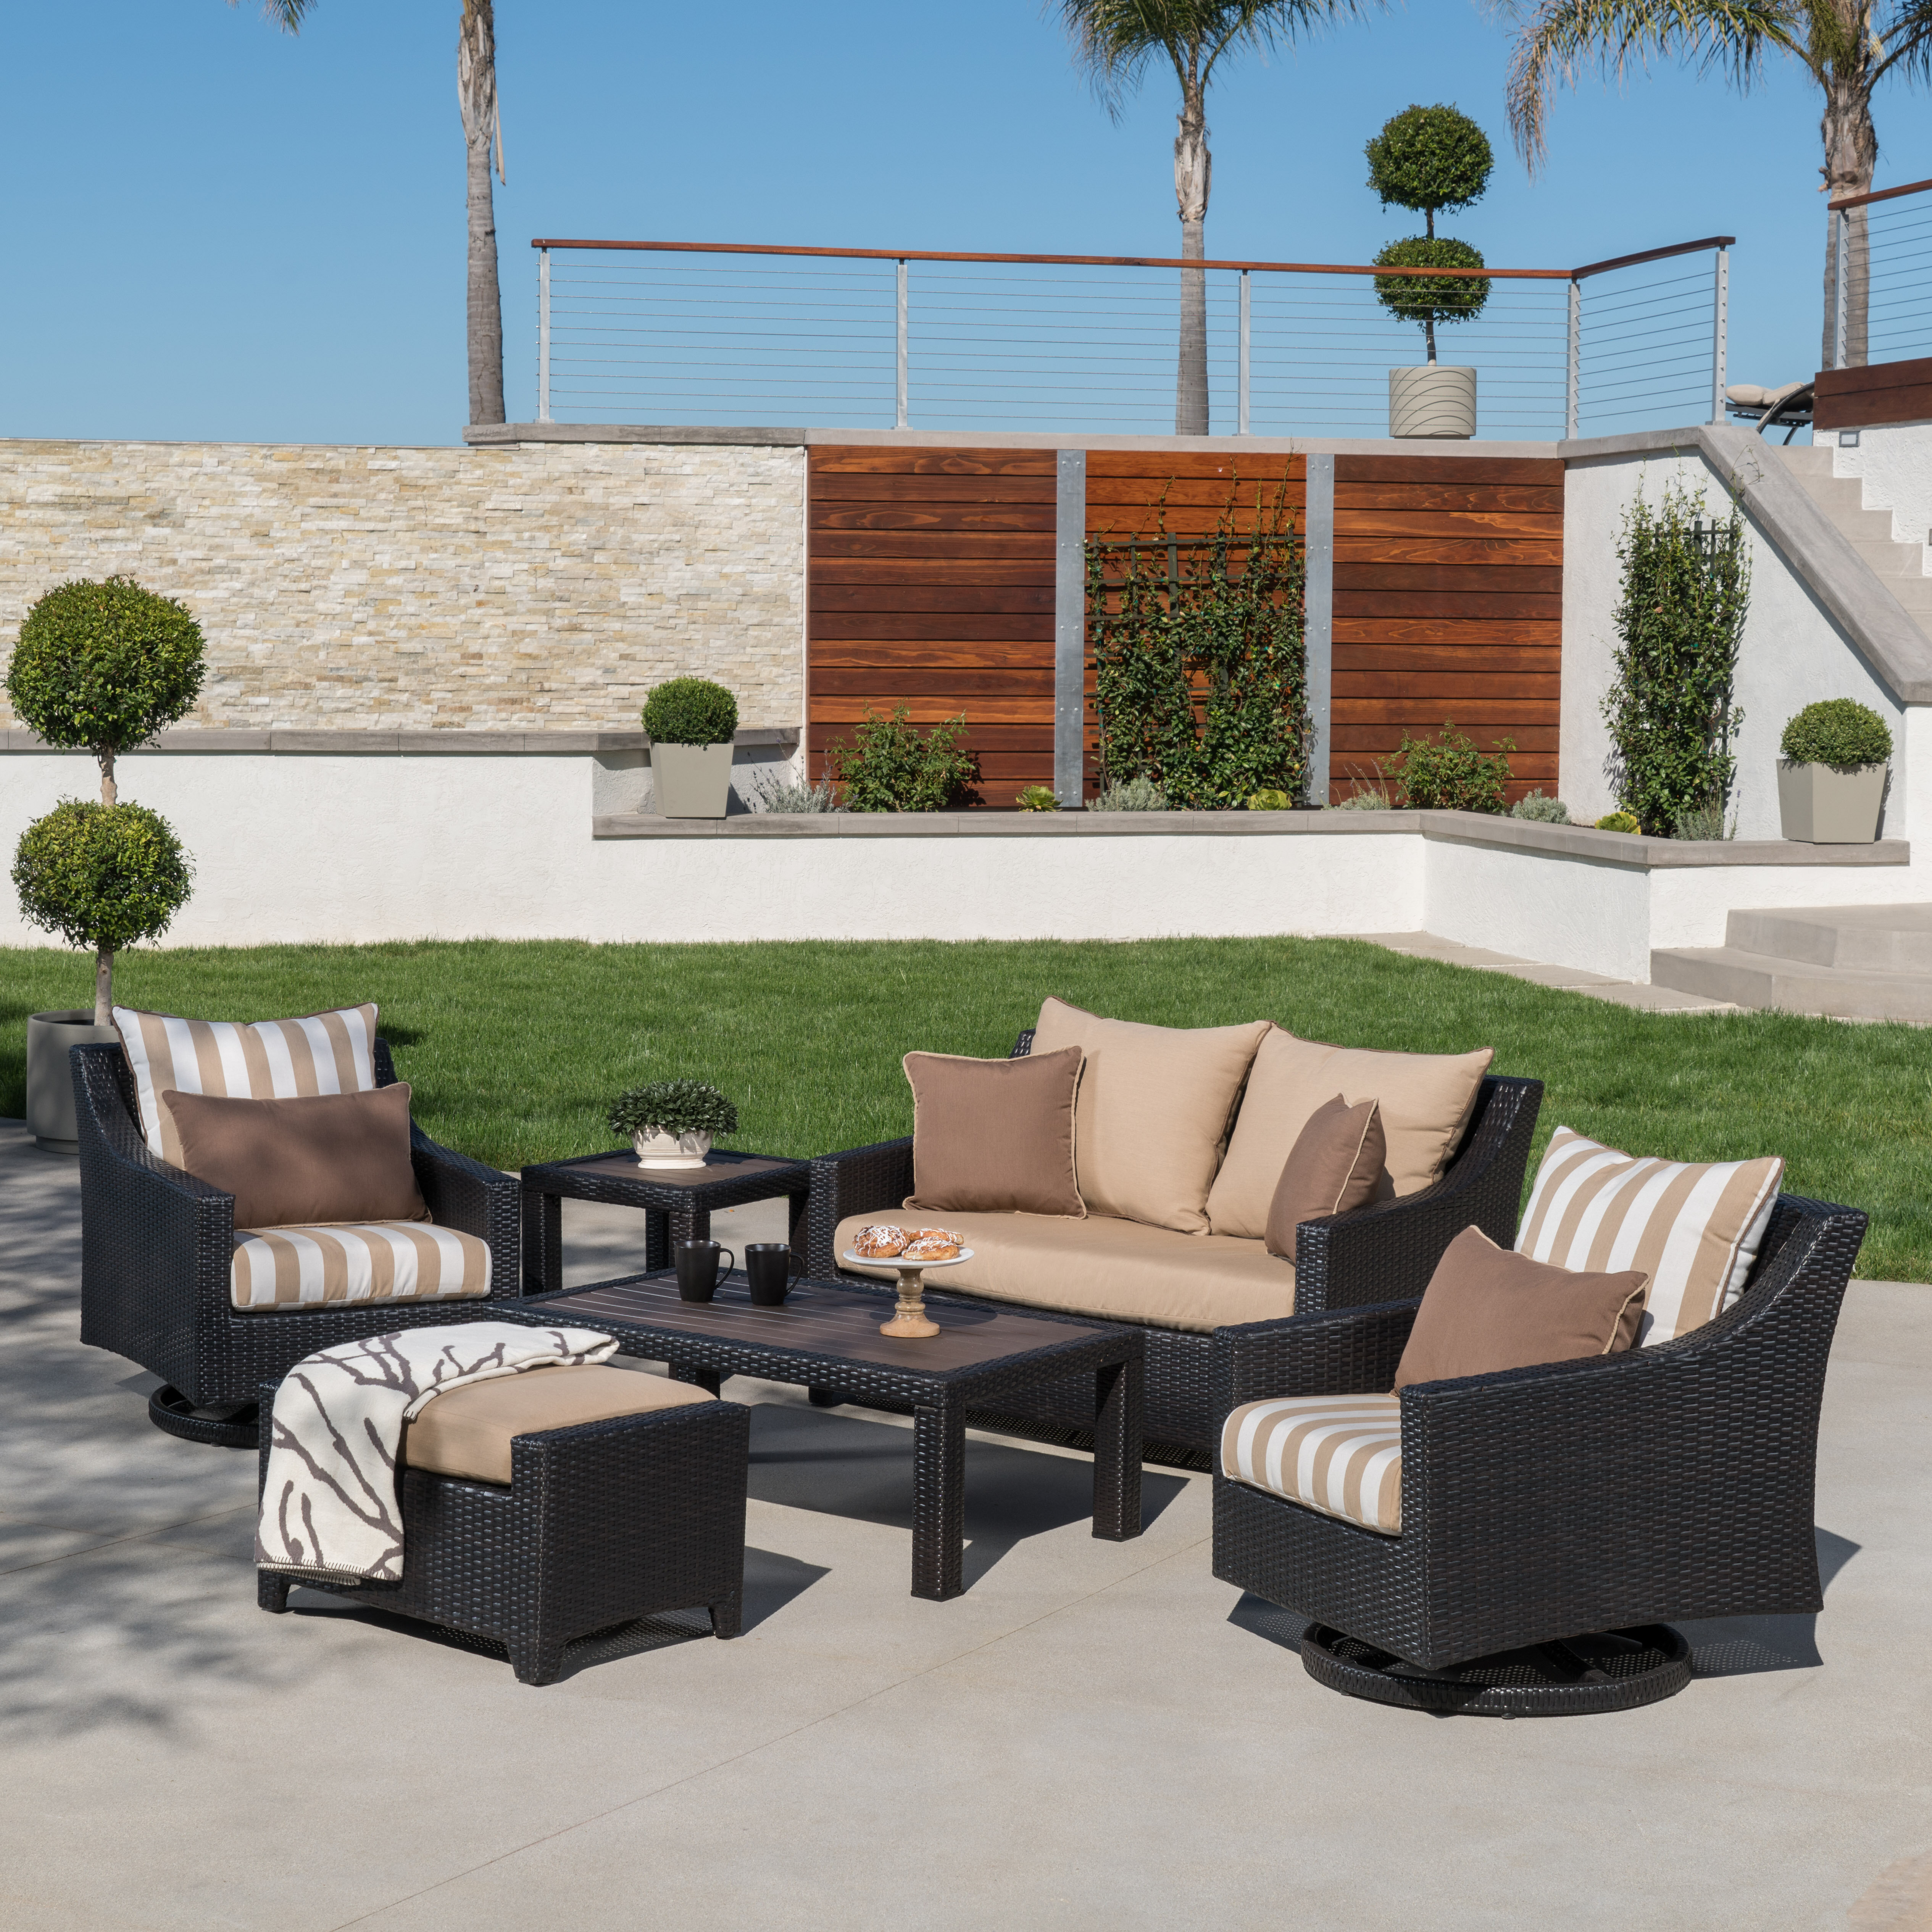 Genial Three Posts Northridge 6 Piece Sunbrella Sofa Set With Cushions U0026 Reviews |  Wayfair